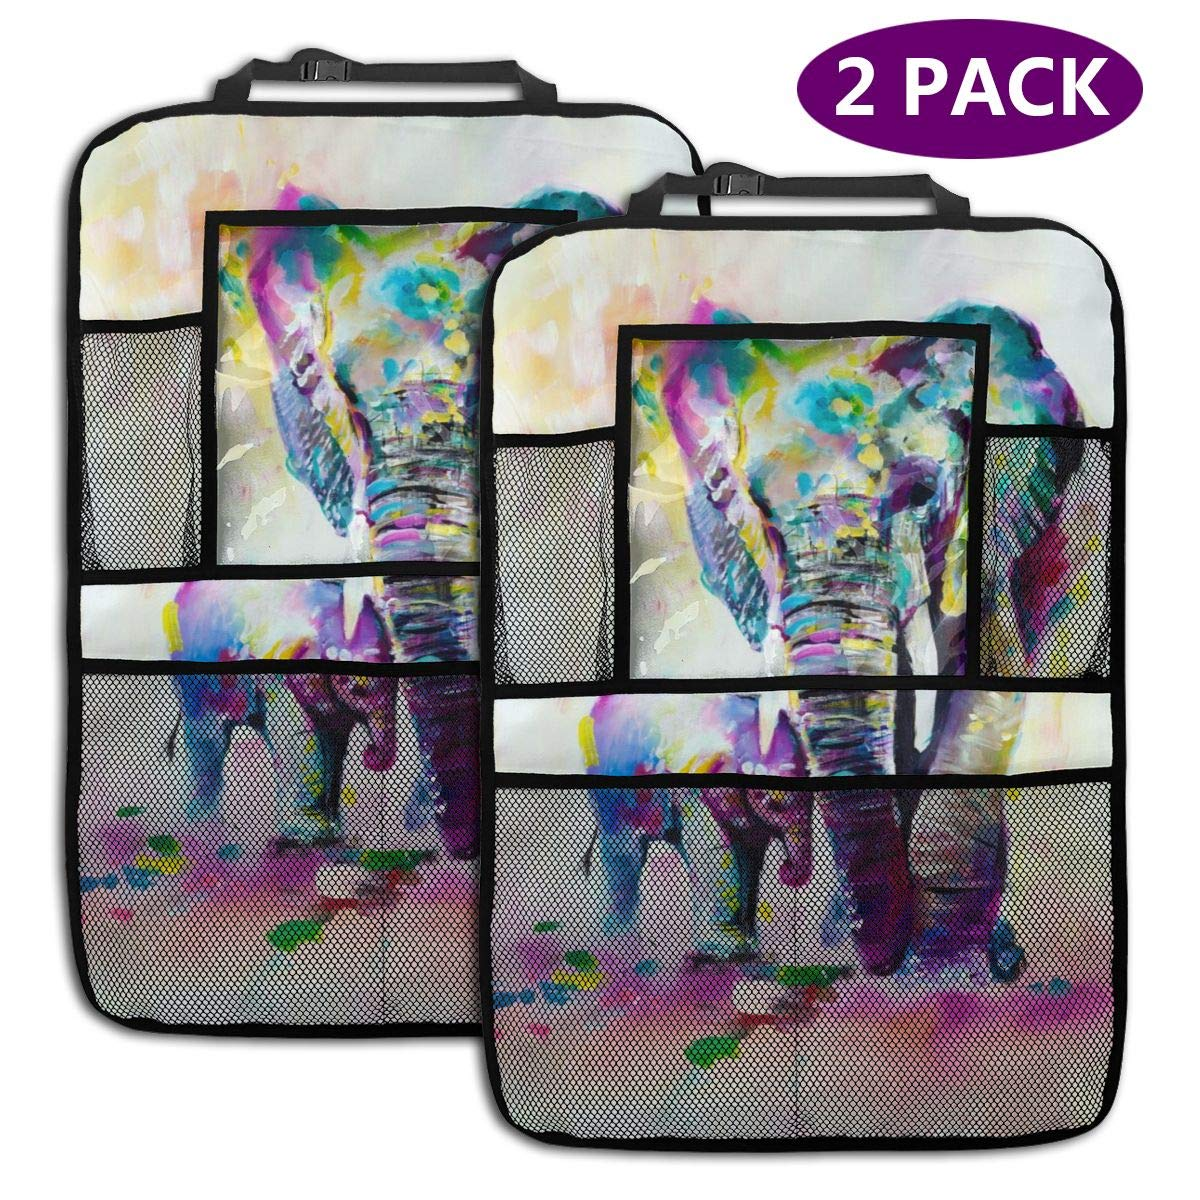 QF6FEICHAN Painted Elephants Car Seat Back Protectors with Storage Pockets Kick Mats Accessories for Kids and Toddlers by QF6FEICHAN